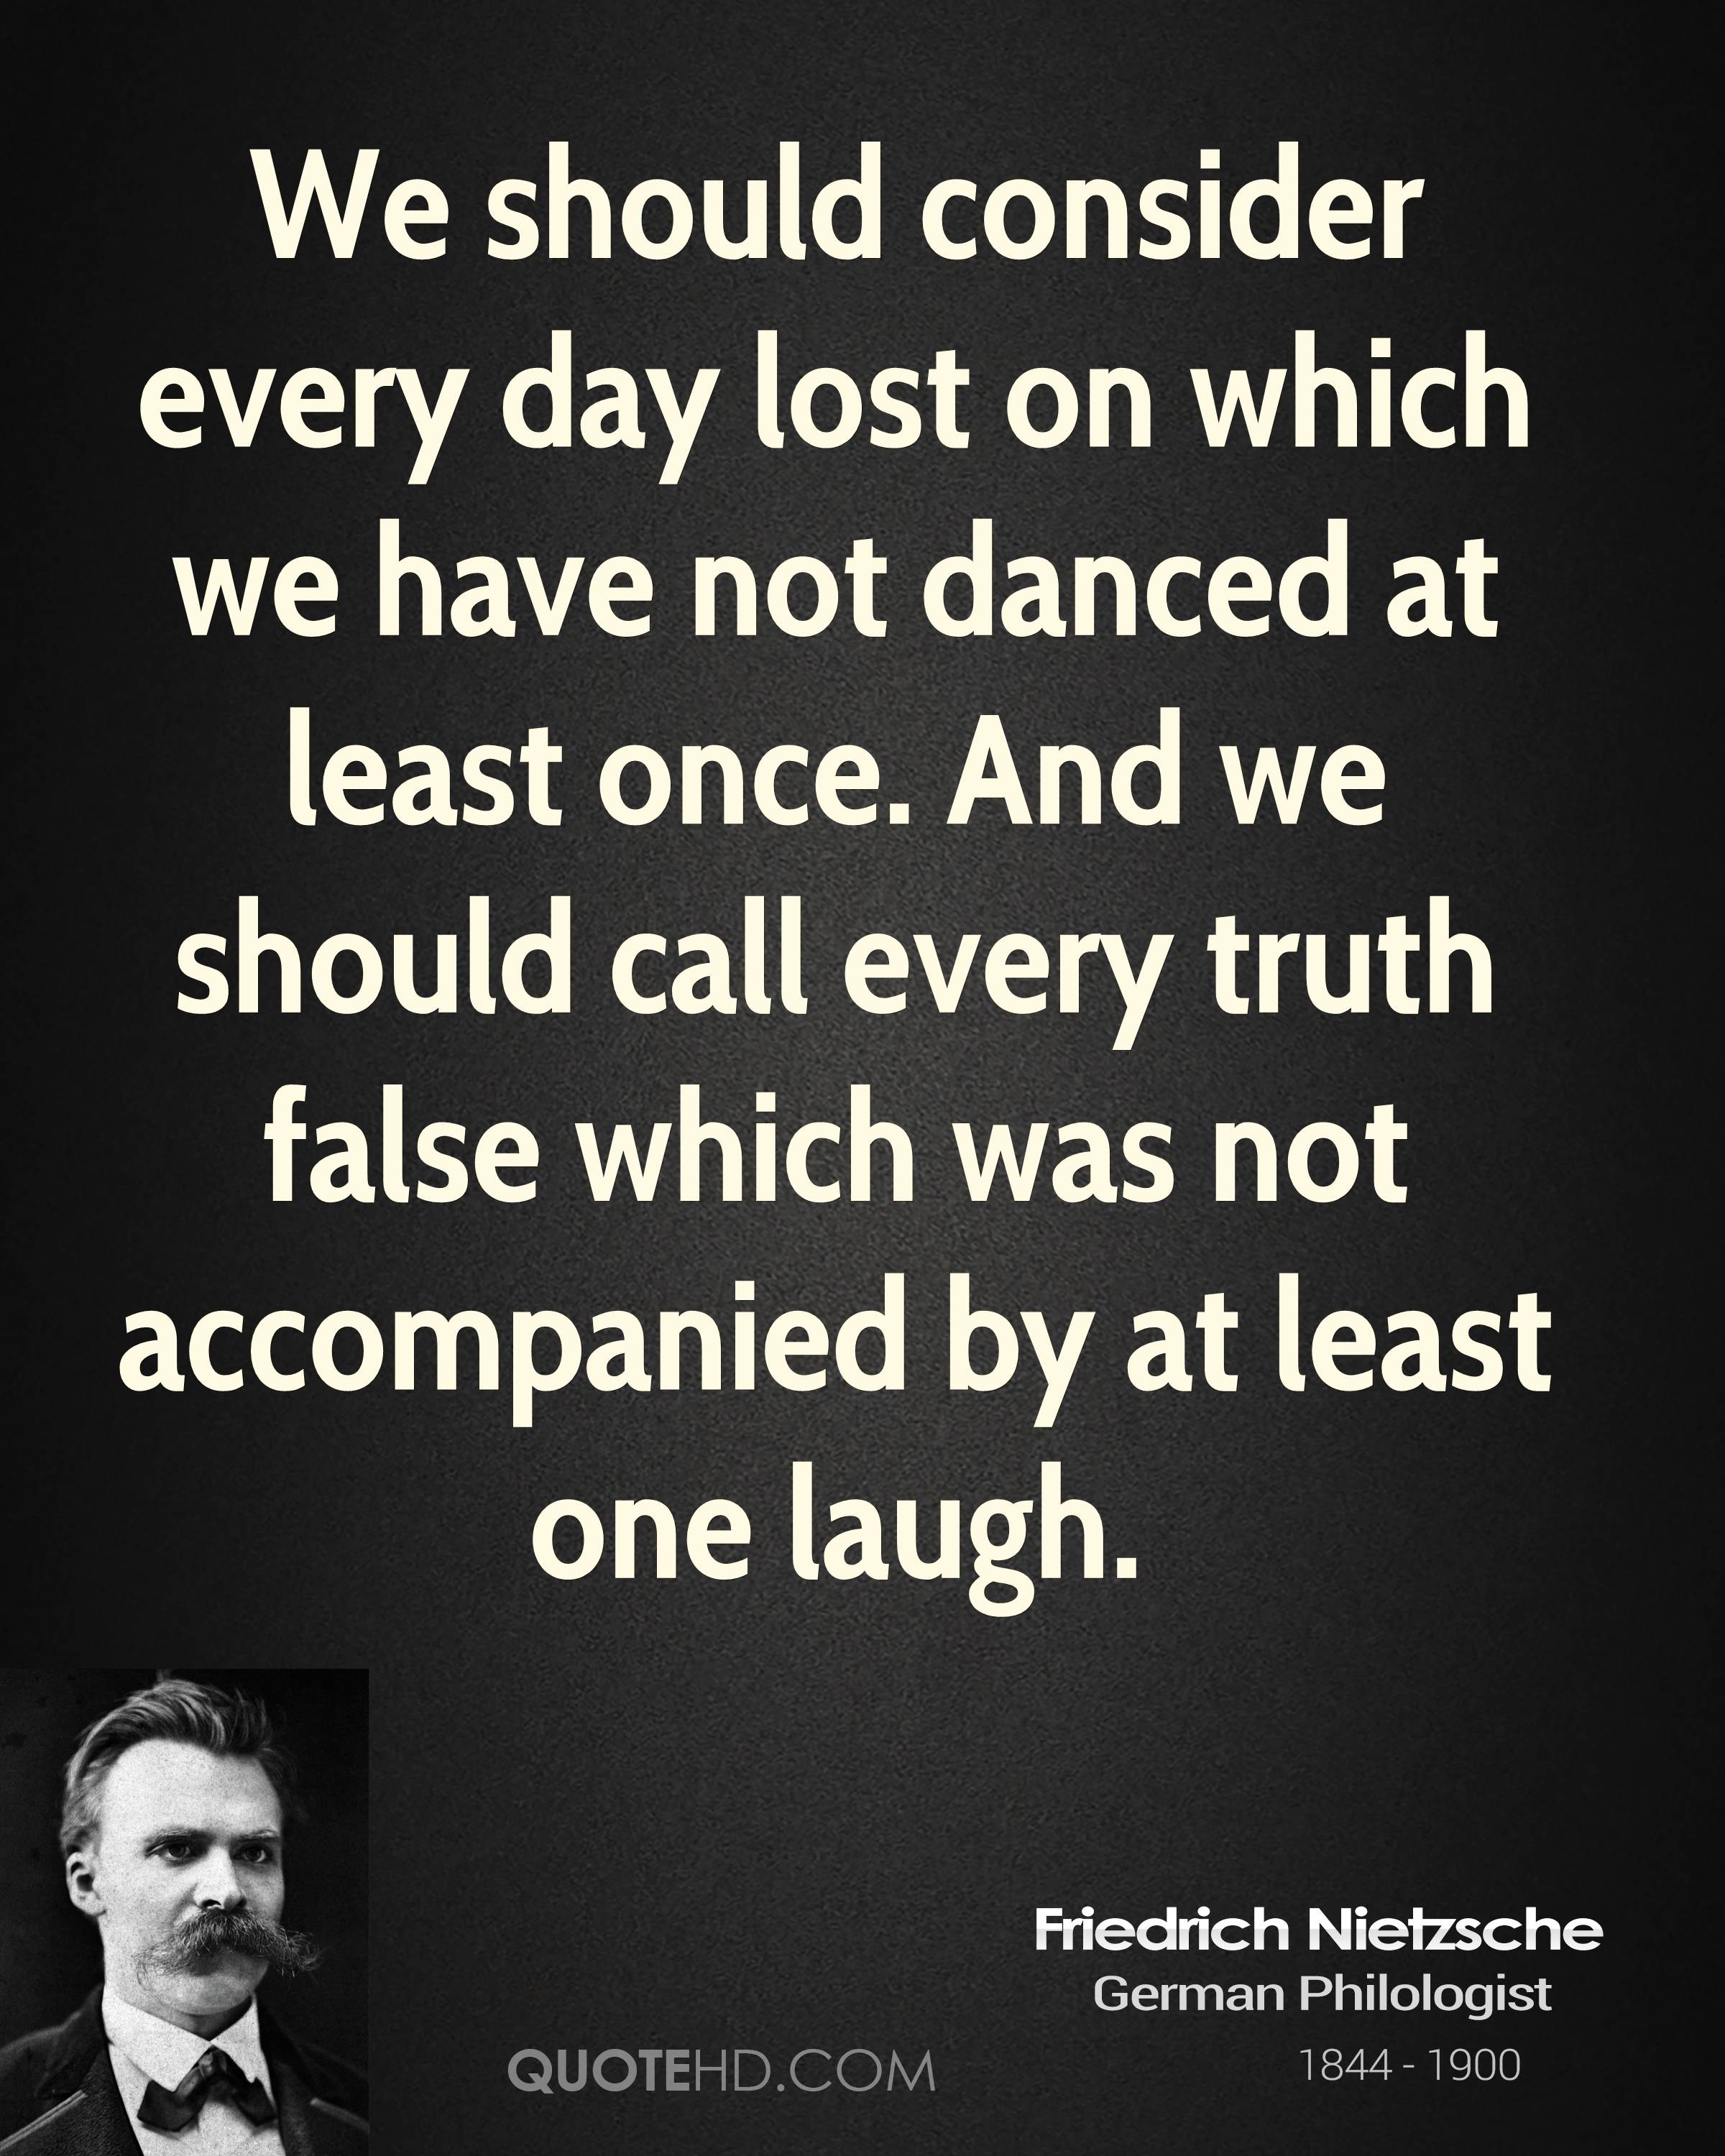 We should consider every day lost on which we have not danced at least once. And we should call every truth false which was not accompanied by at least one laugh.